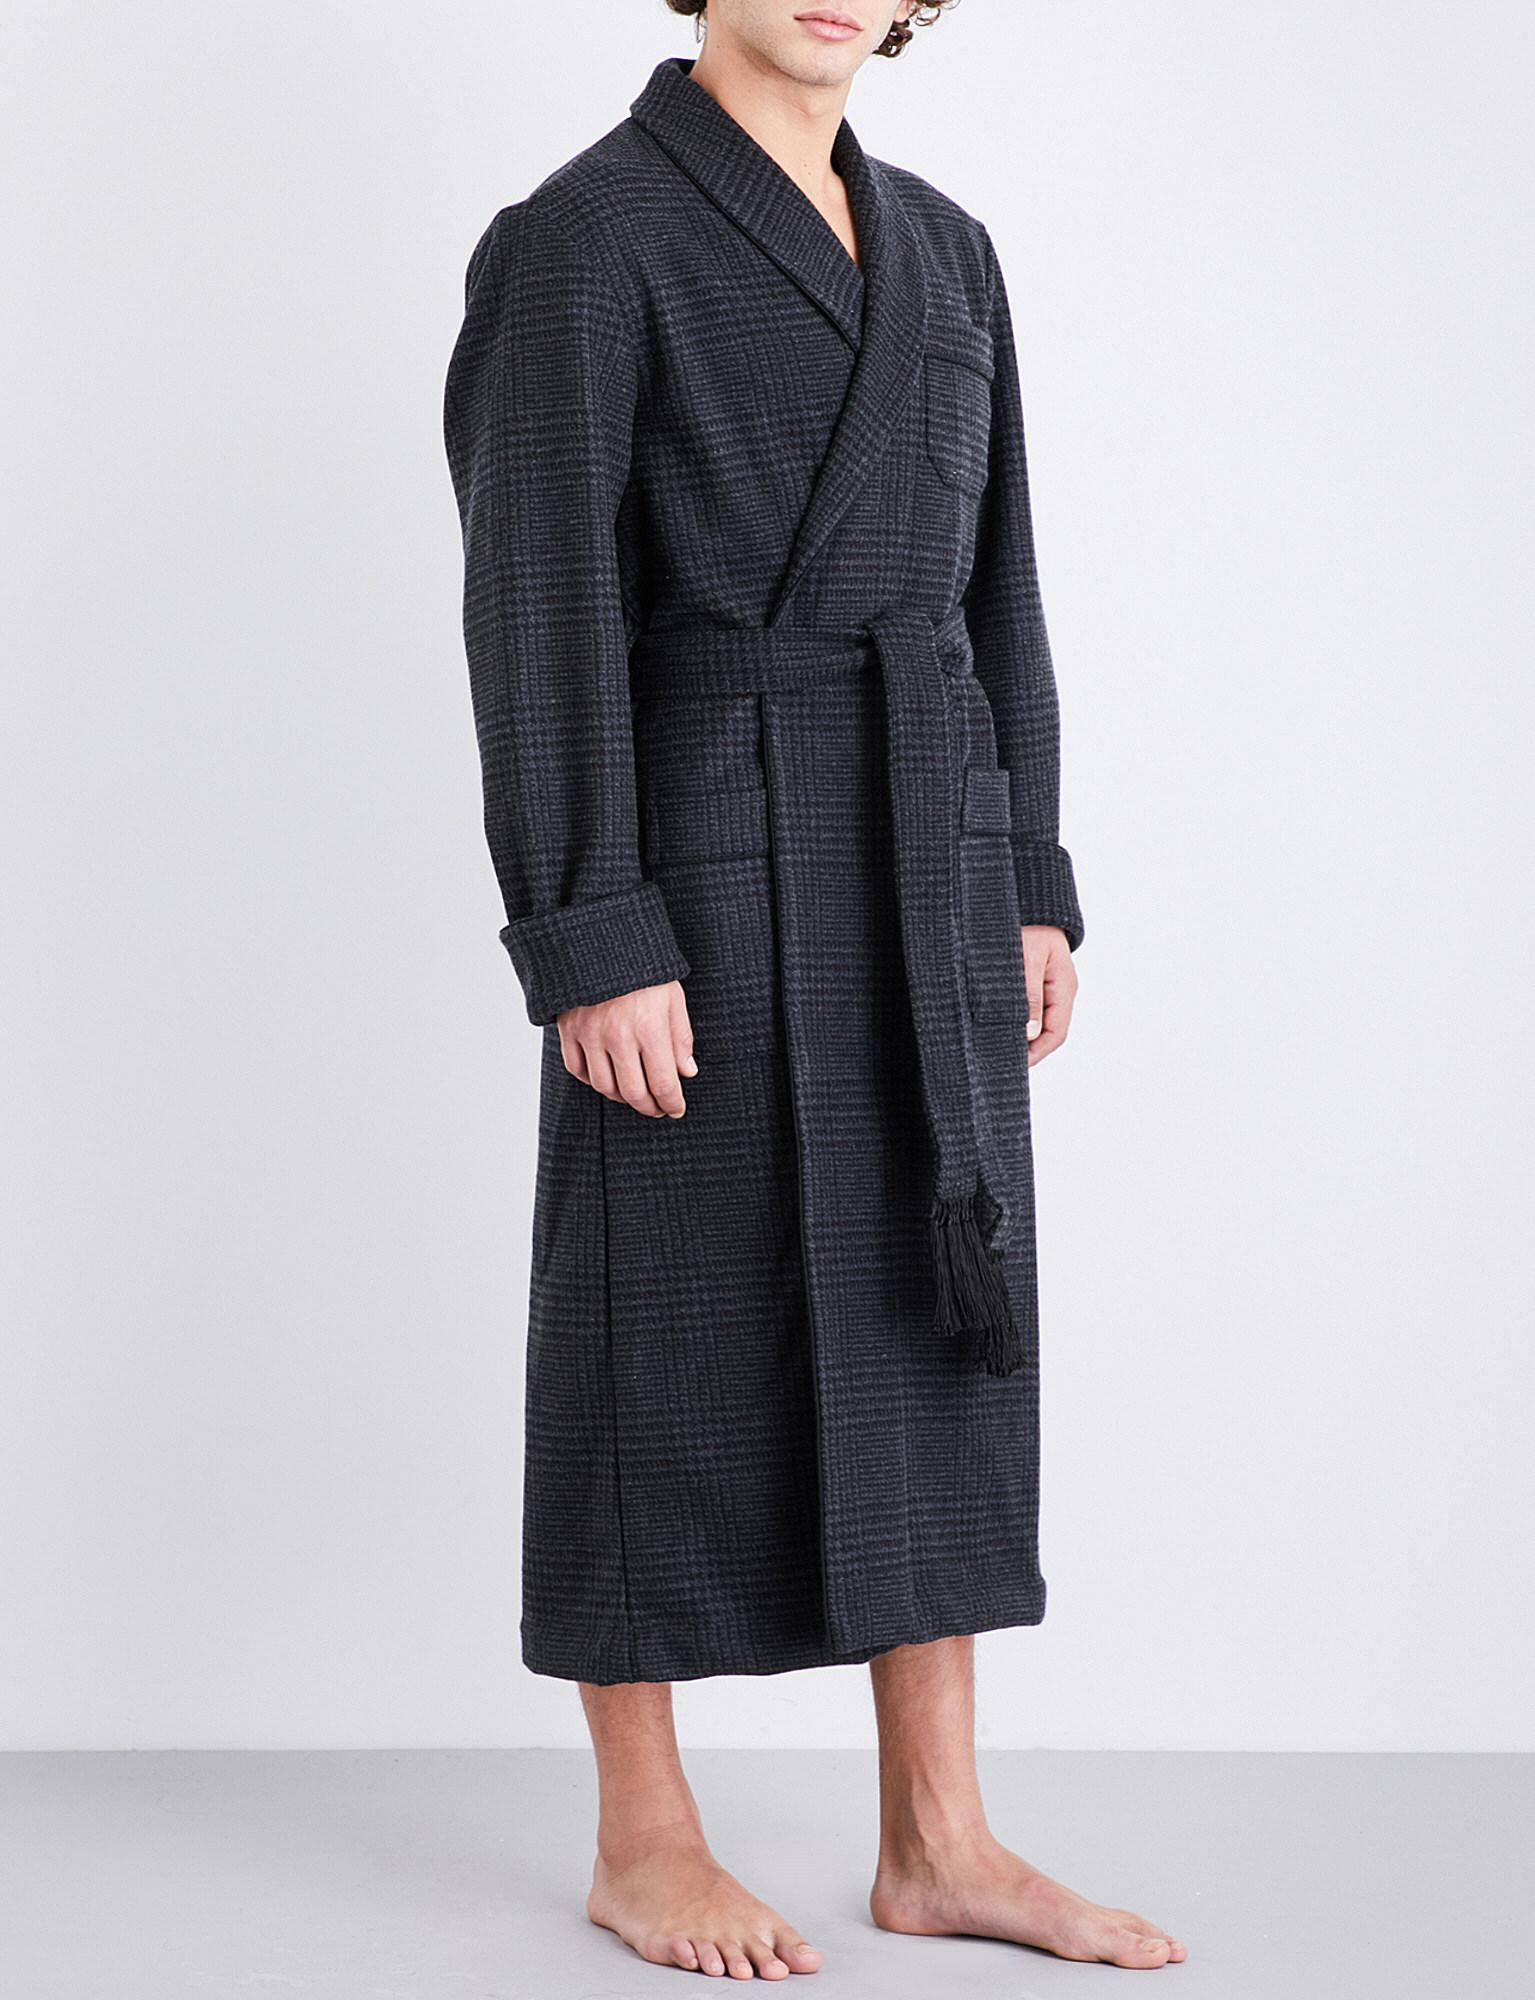 lowest price perfect quality suitable for men/women Derek Rose Gray Blandford Houndstooth Wool And Cashmere-blend Dressing Gown  for men